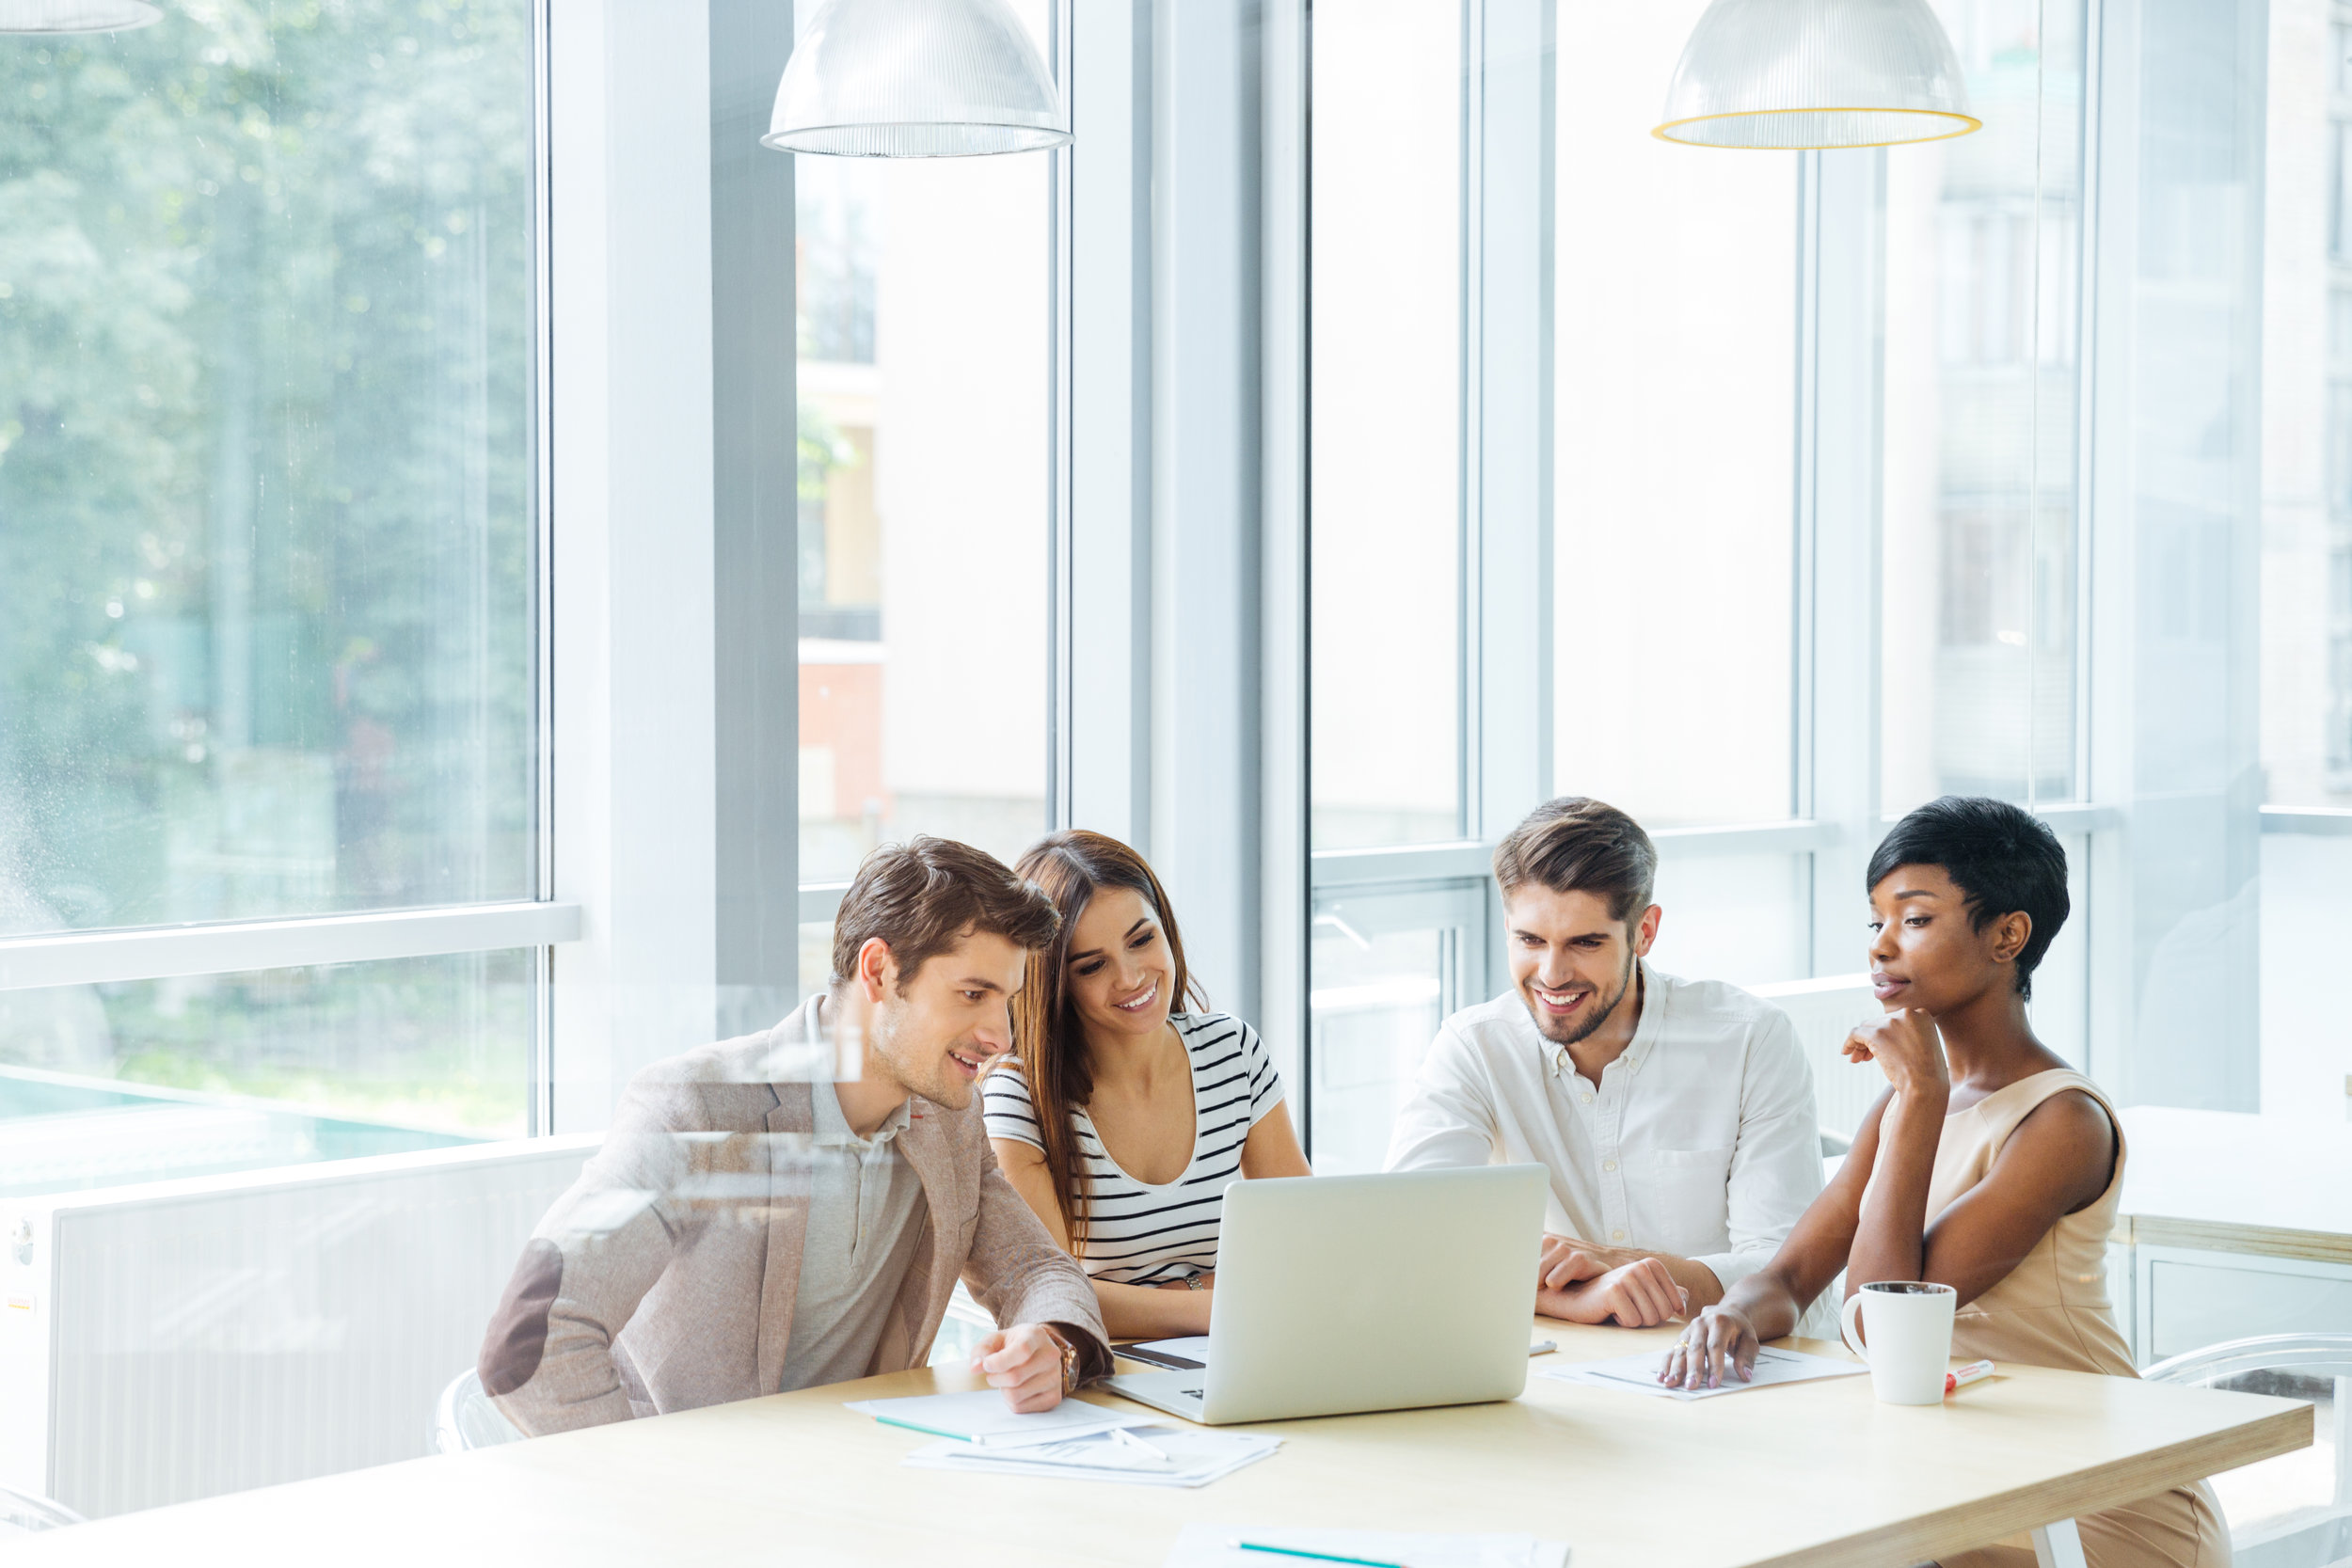 happy-business-team-working-with-laptop-together-P7N6VU9.jpg